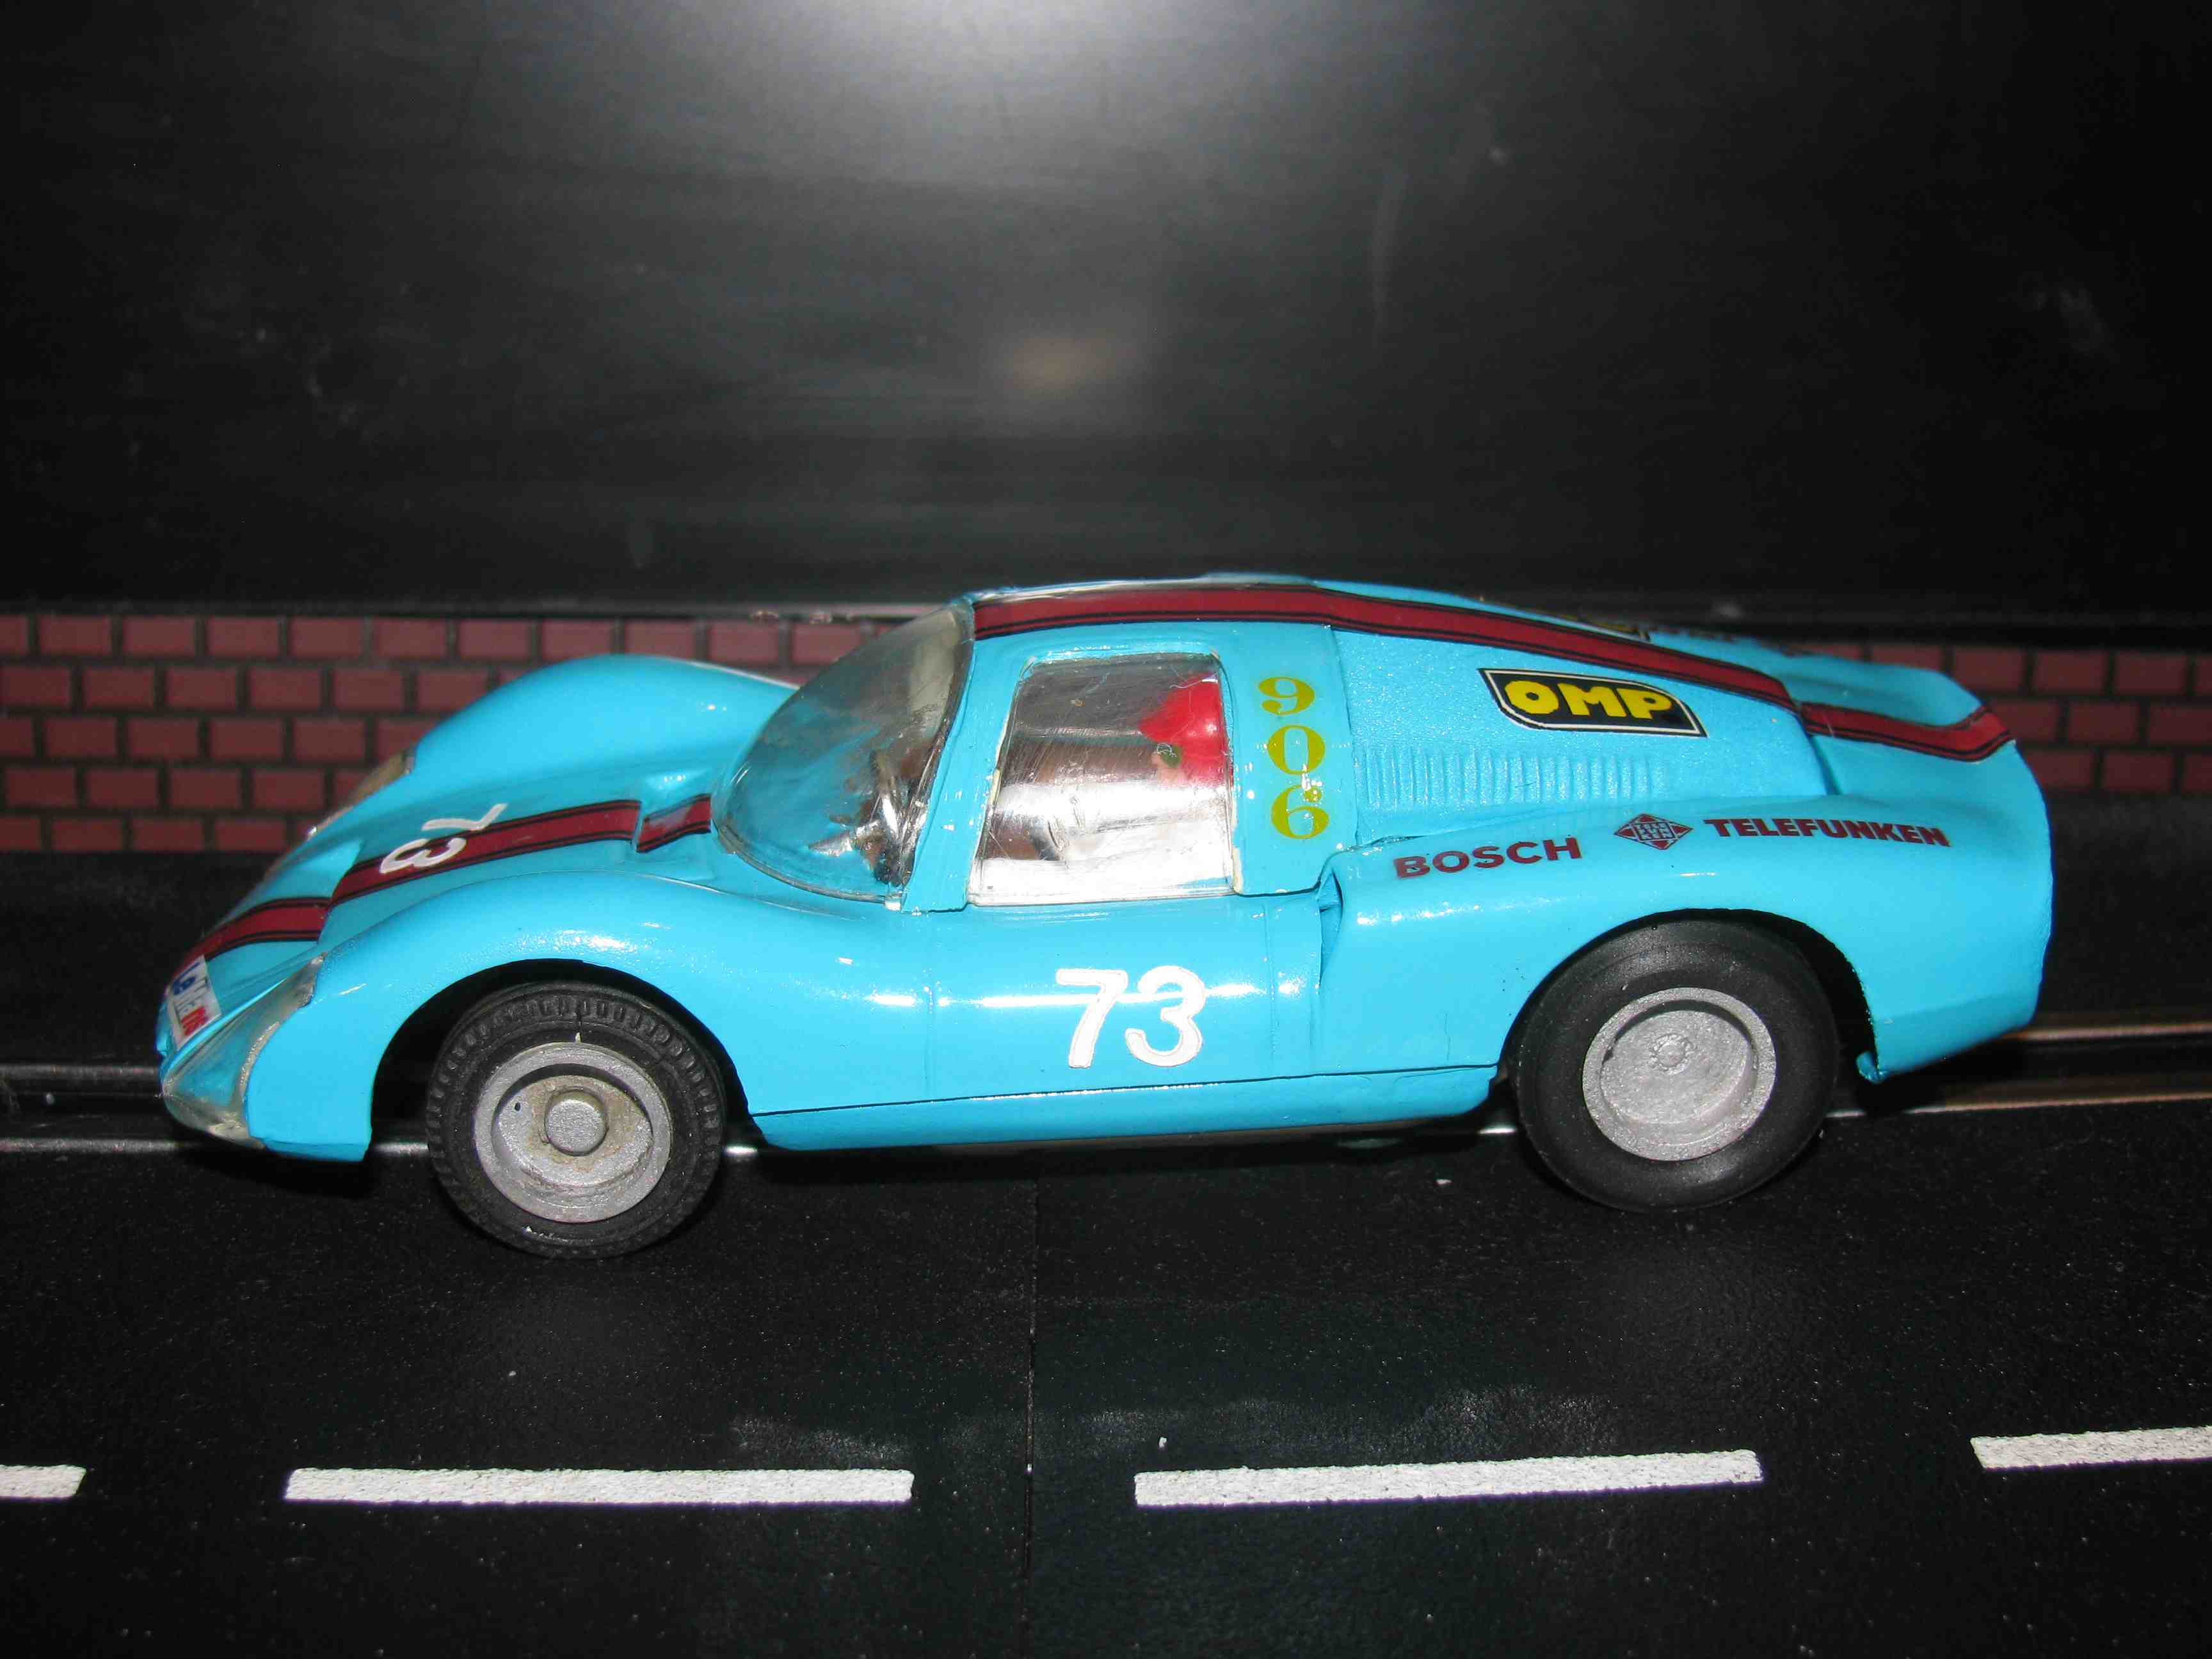 * SOLD * Strombecker Porsche 906 Carrera 6 GTS Slot Car 1/32 Scale – Car 73